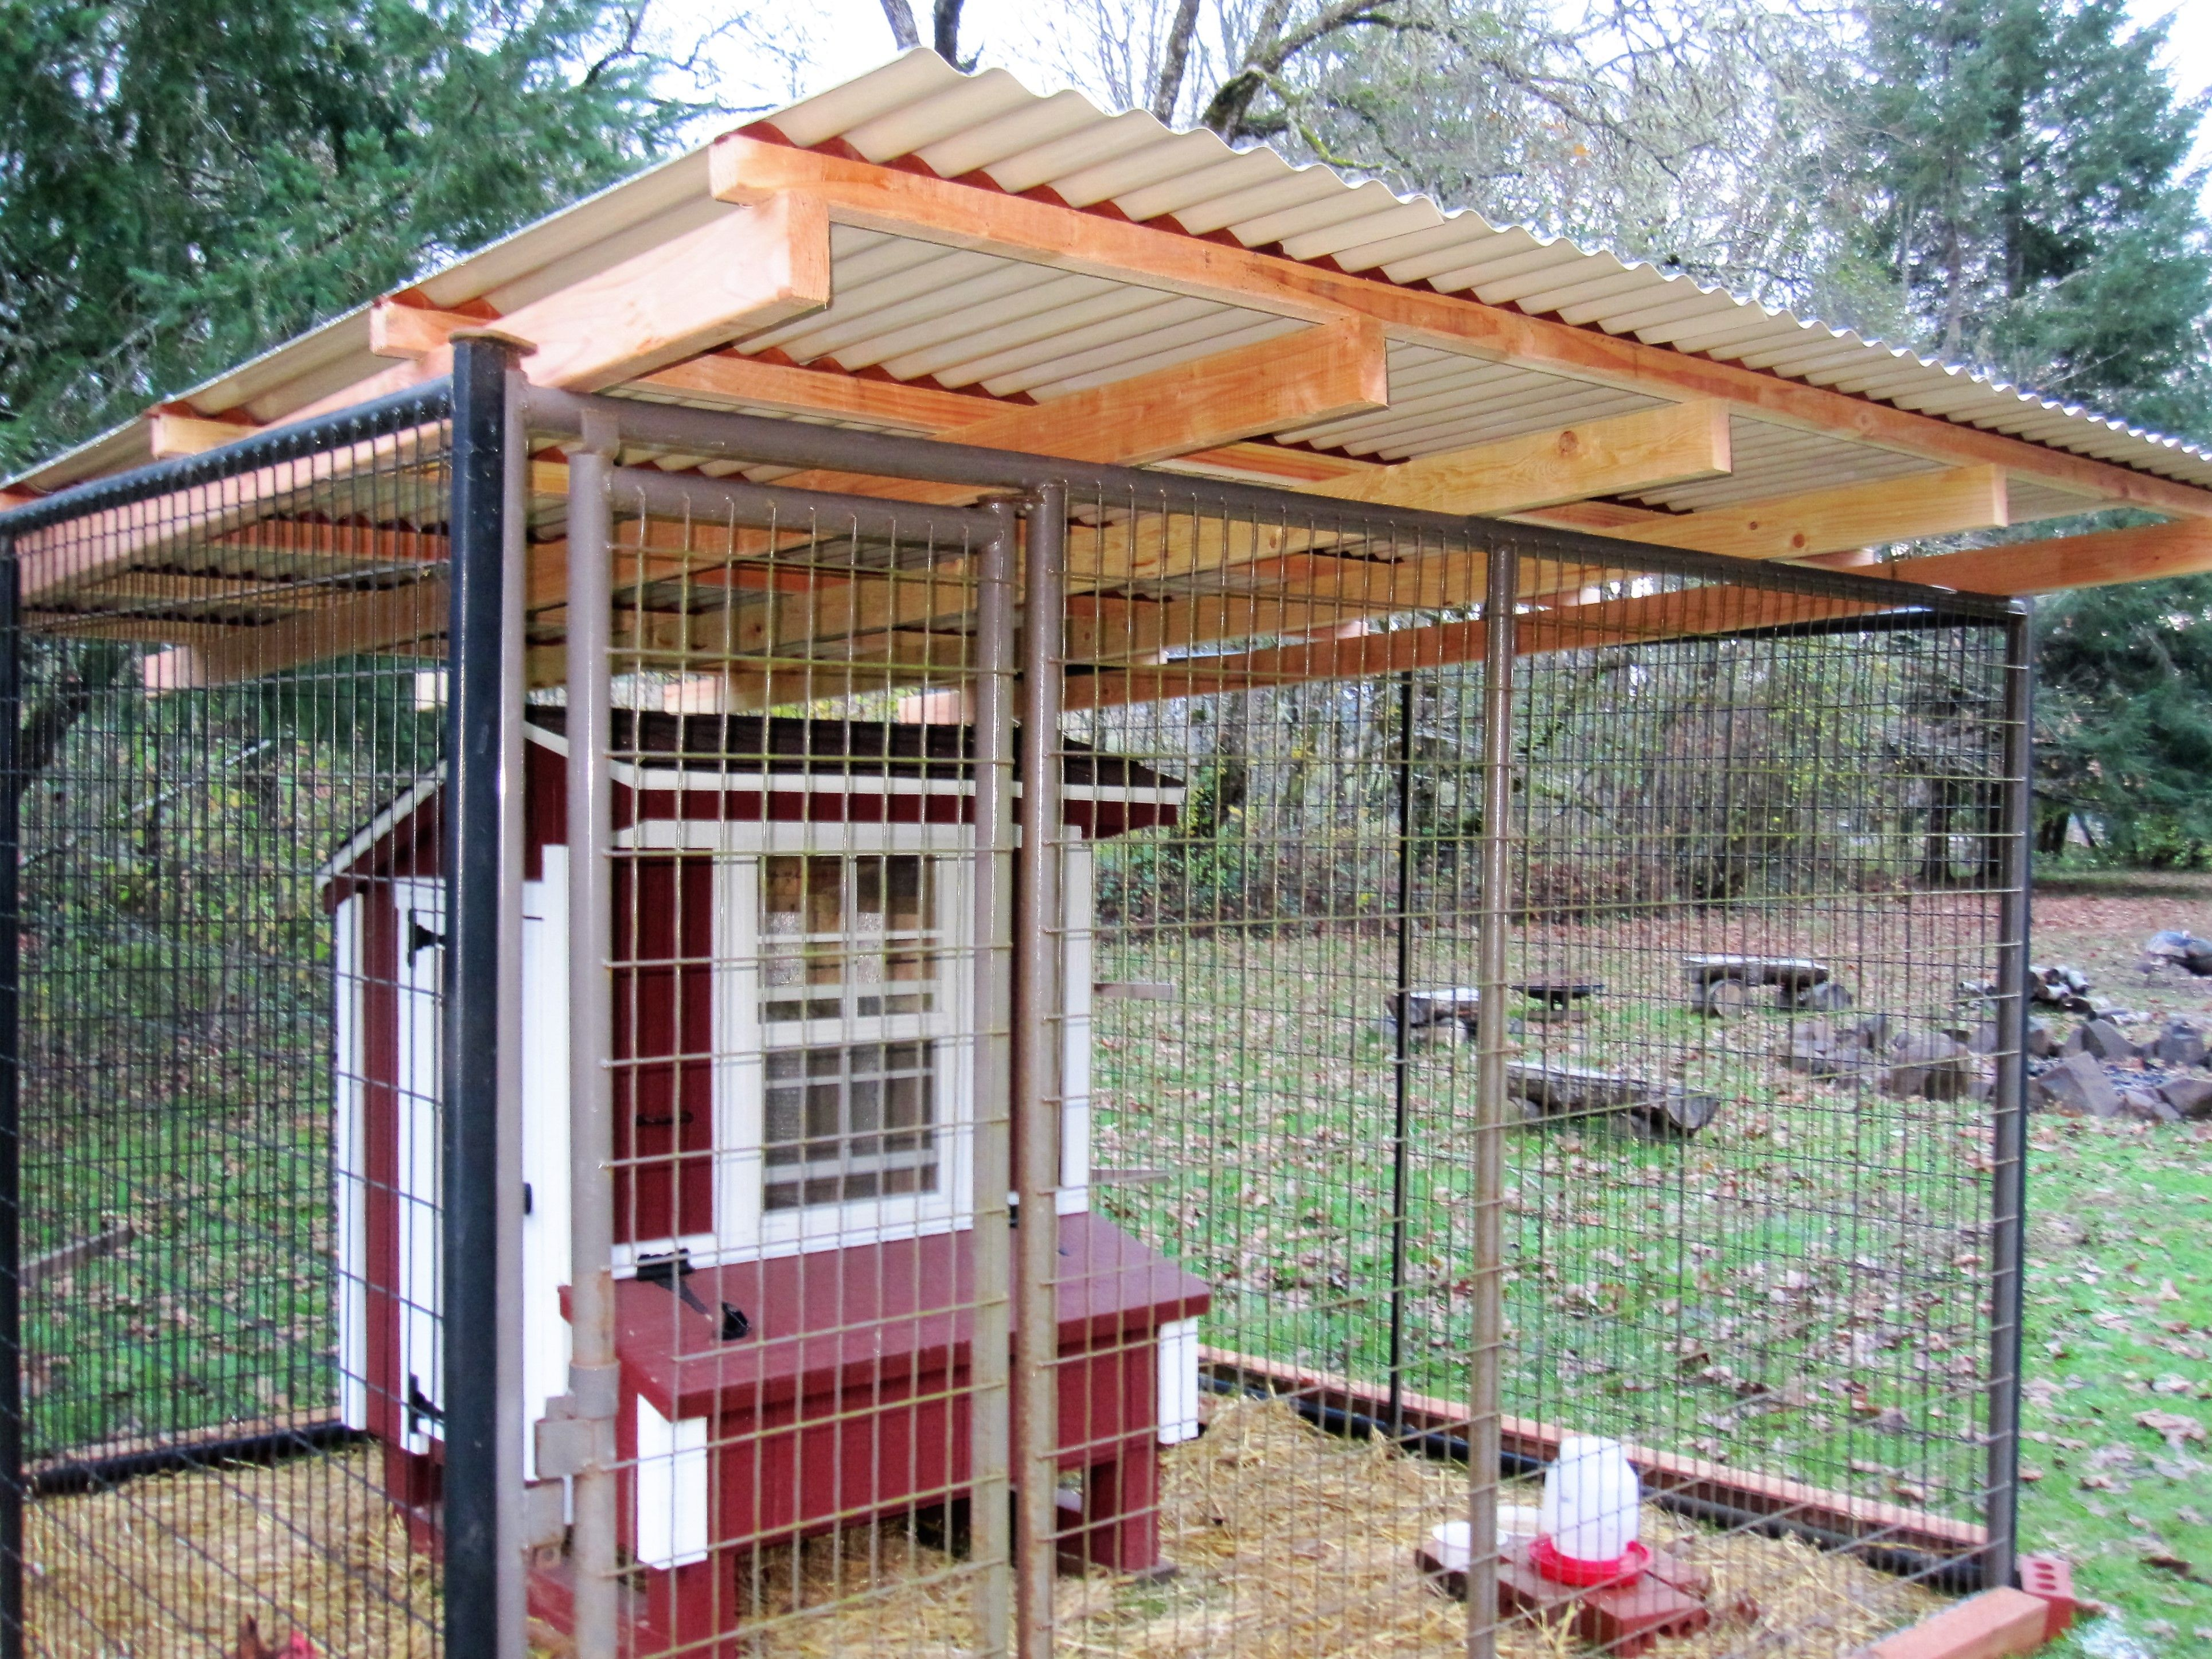 My Husband Don Put On New Beige Colored Pvc Corrugated Roof On Chicken Run For Little Red Nov 2016 Building A Chicken Run Corrugated Roofing Chicken Runs